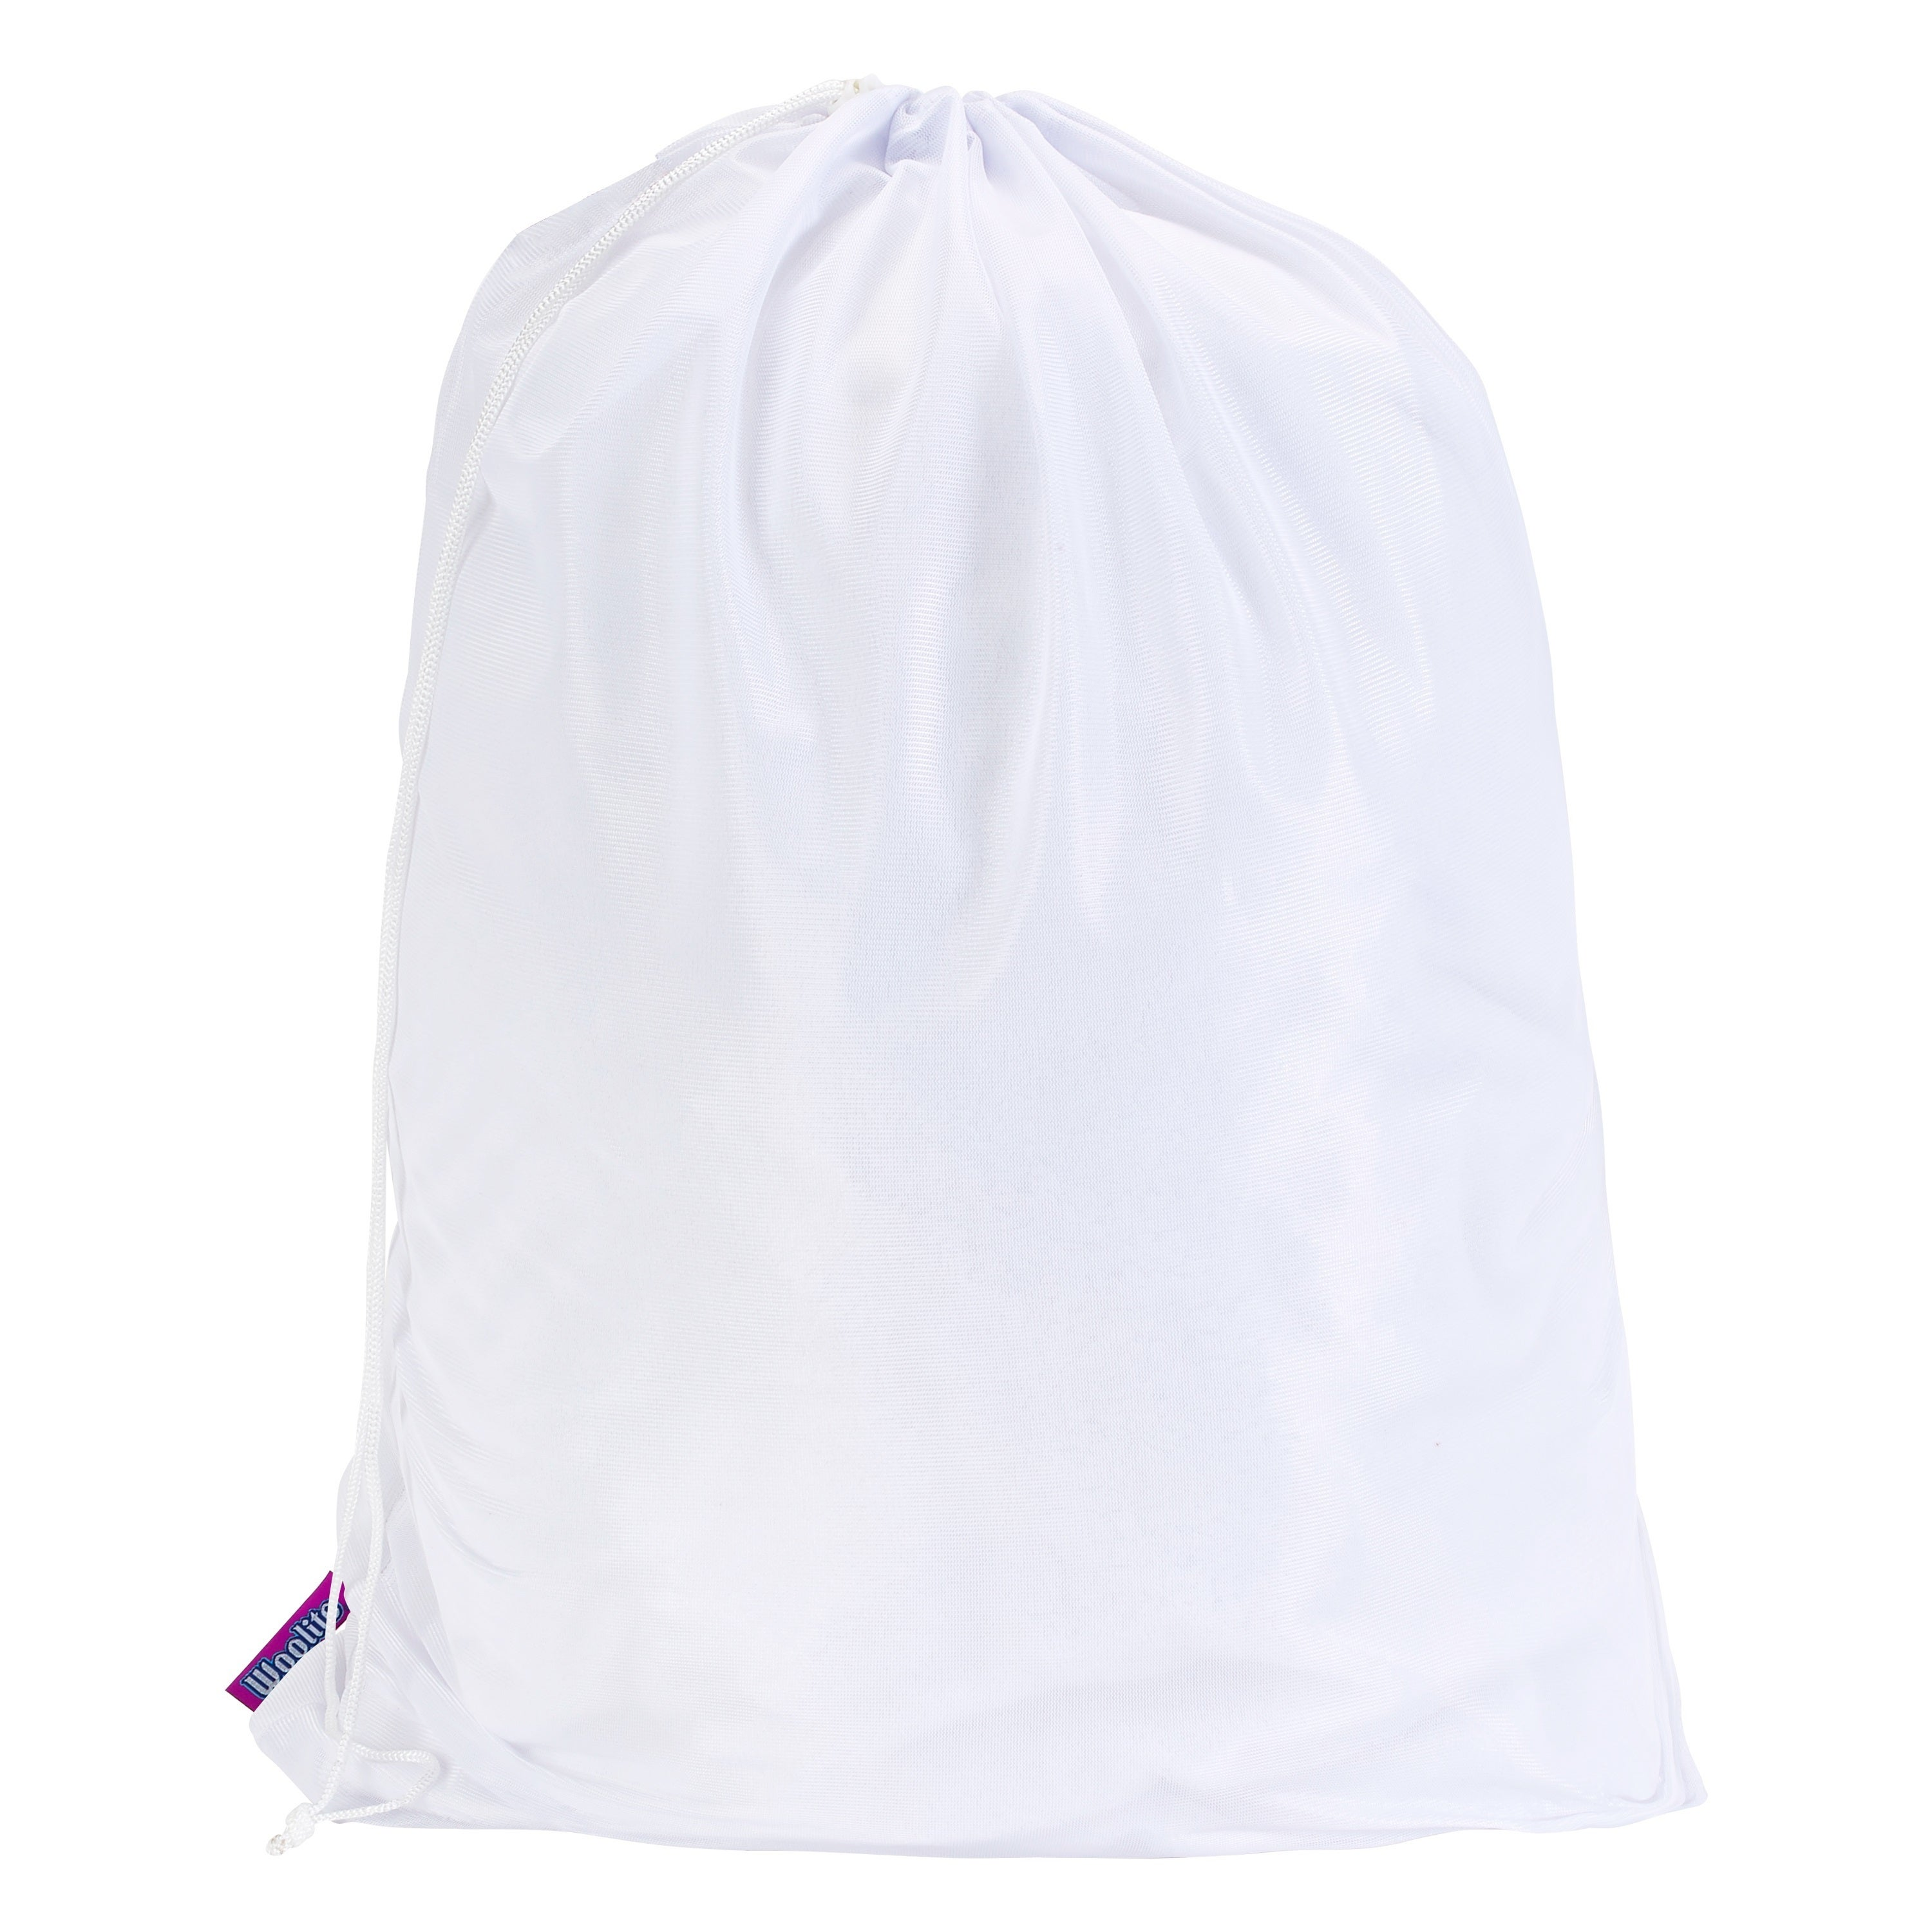 Woolite White Mesh Laundry Bag Free Shipping On Orders Over 45 13456407